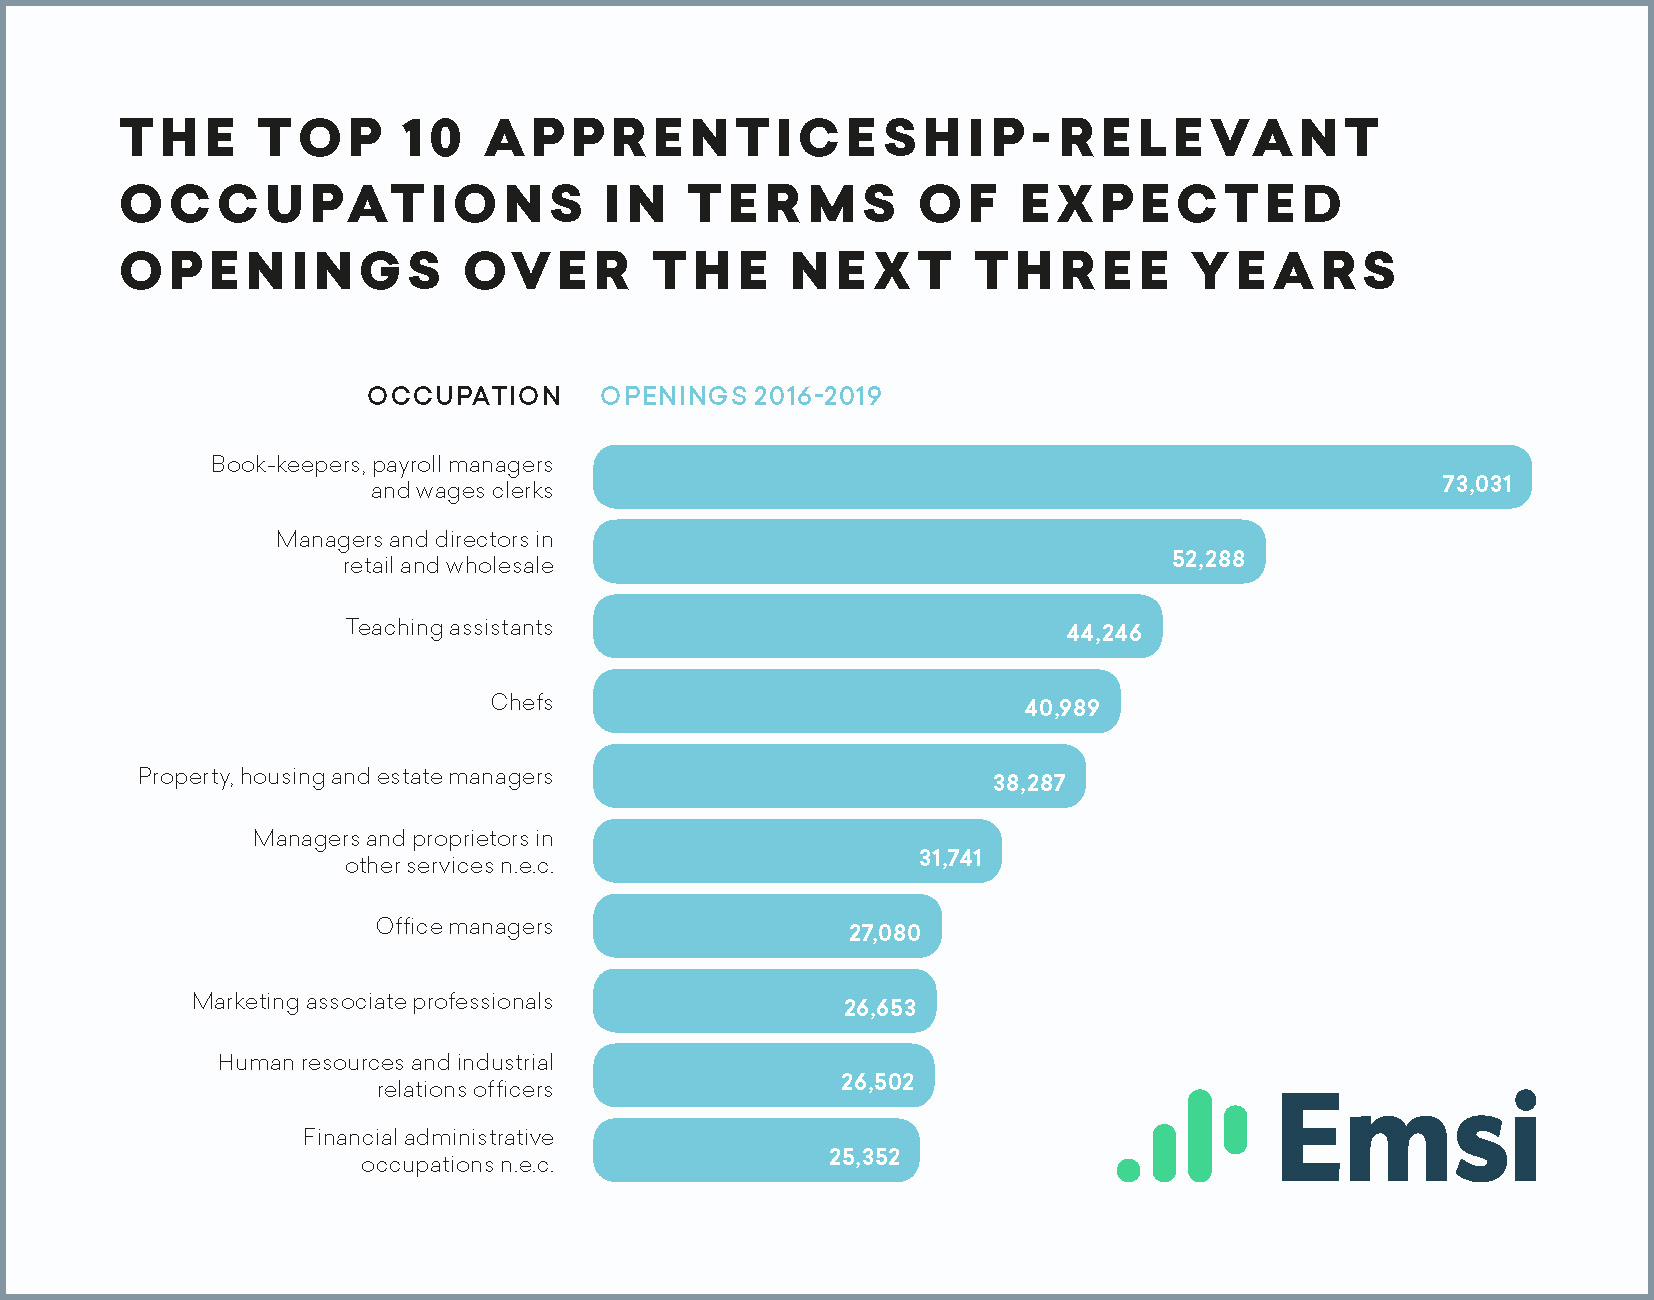 The Top 10 Apprenticeship-Relevant Occupations in Terms of Expected Openings Over the Next Three Years